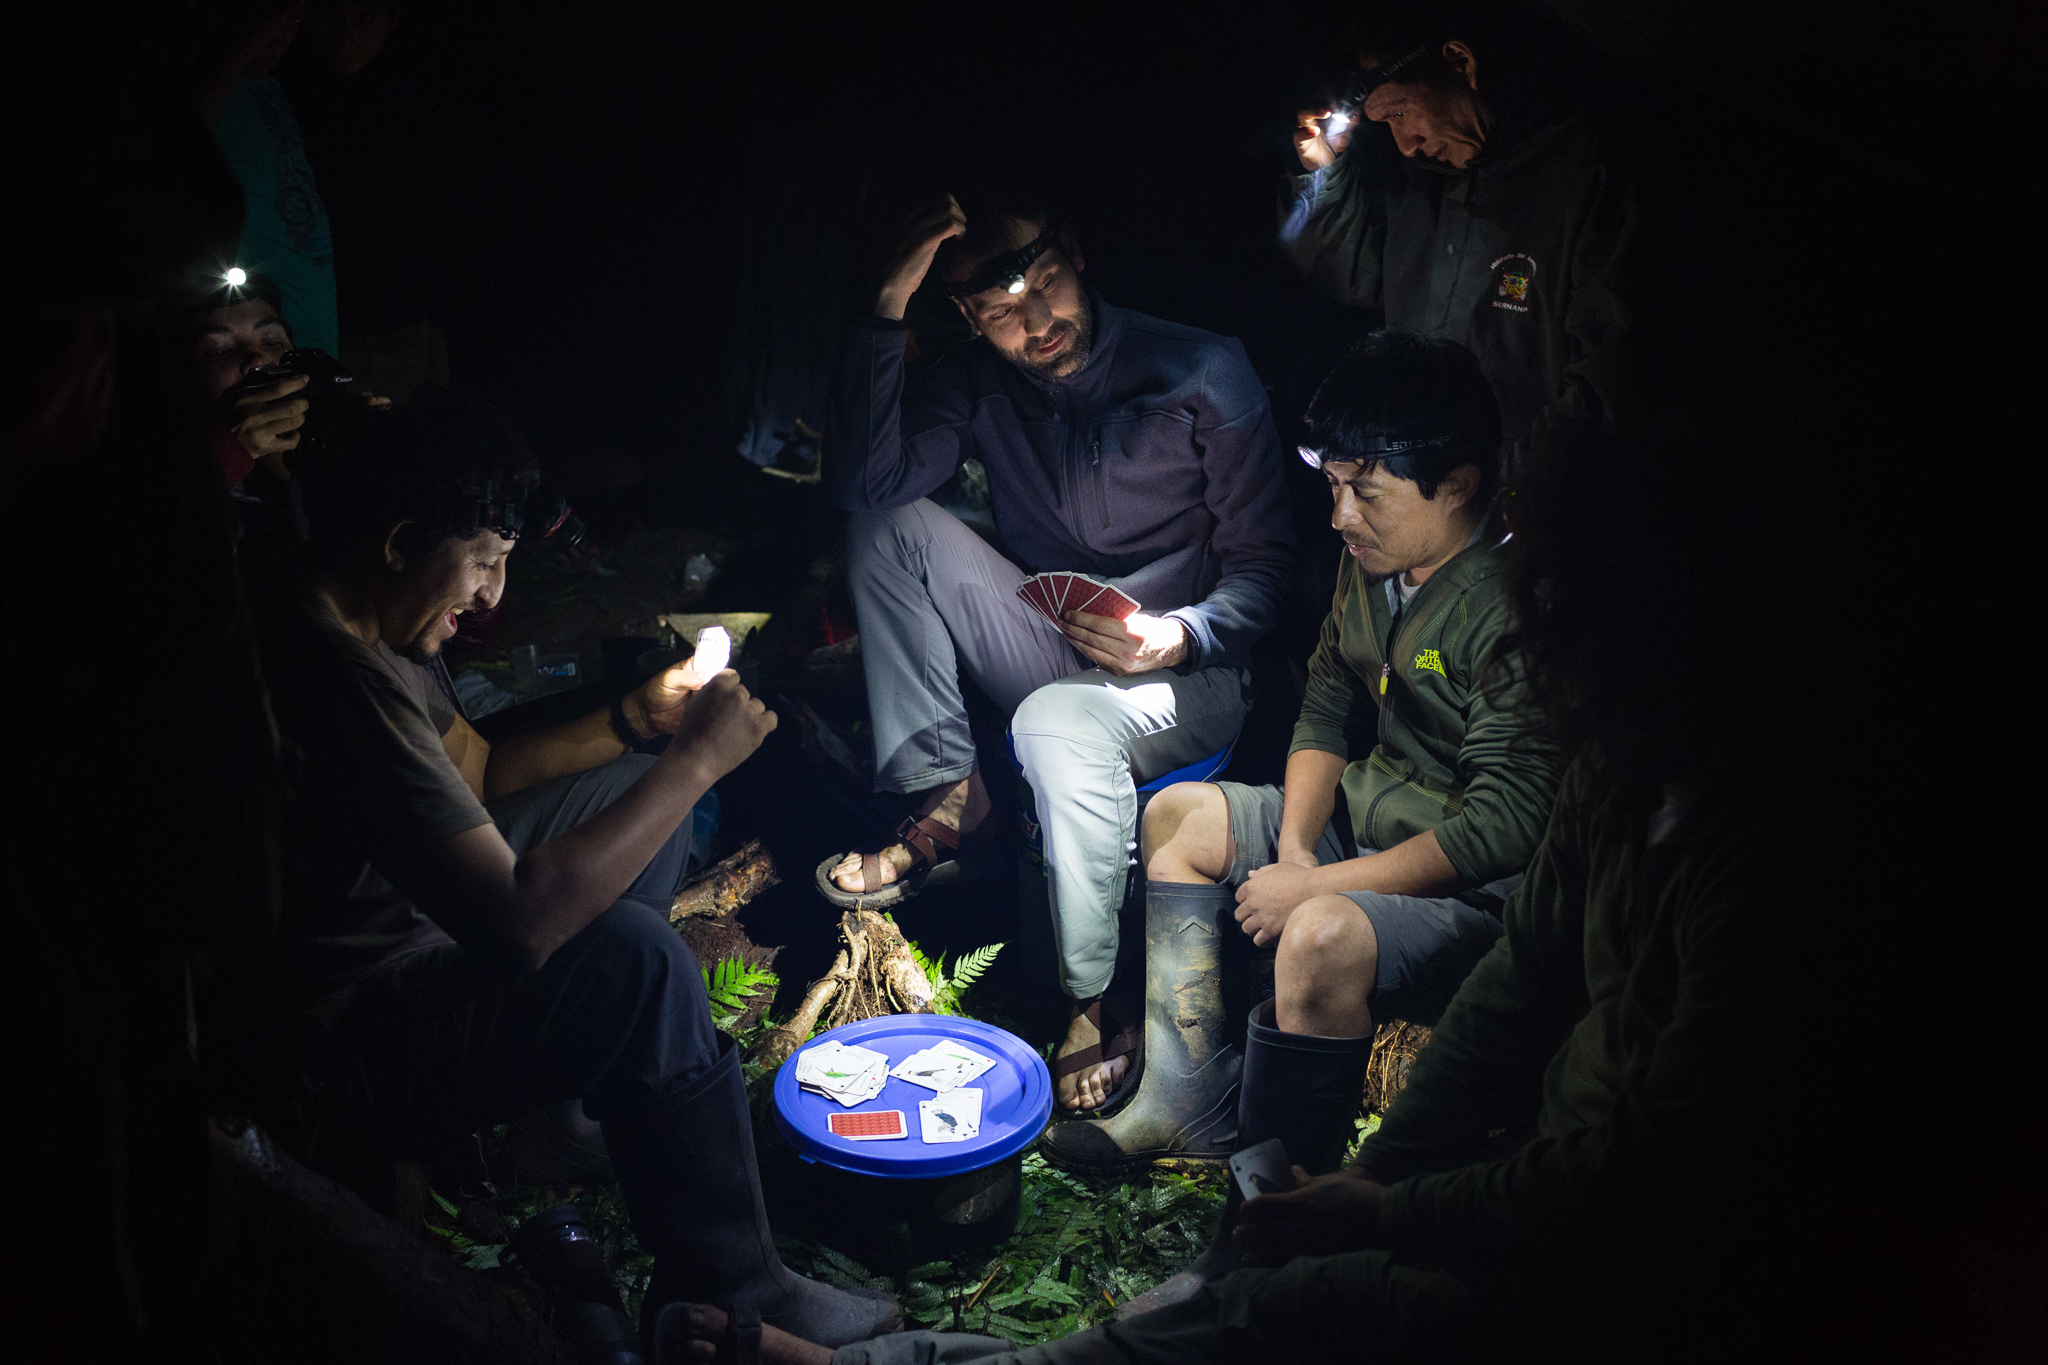 The team members entertain themselves over a game of cards illuminated by headlamp lights. Photo by Andy Isaacson